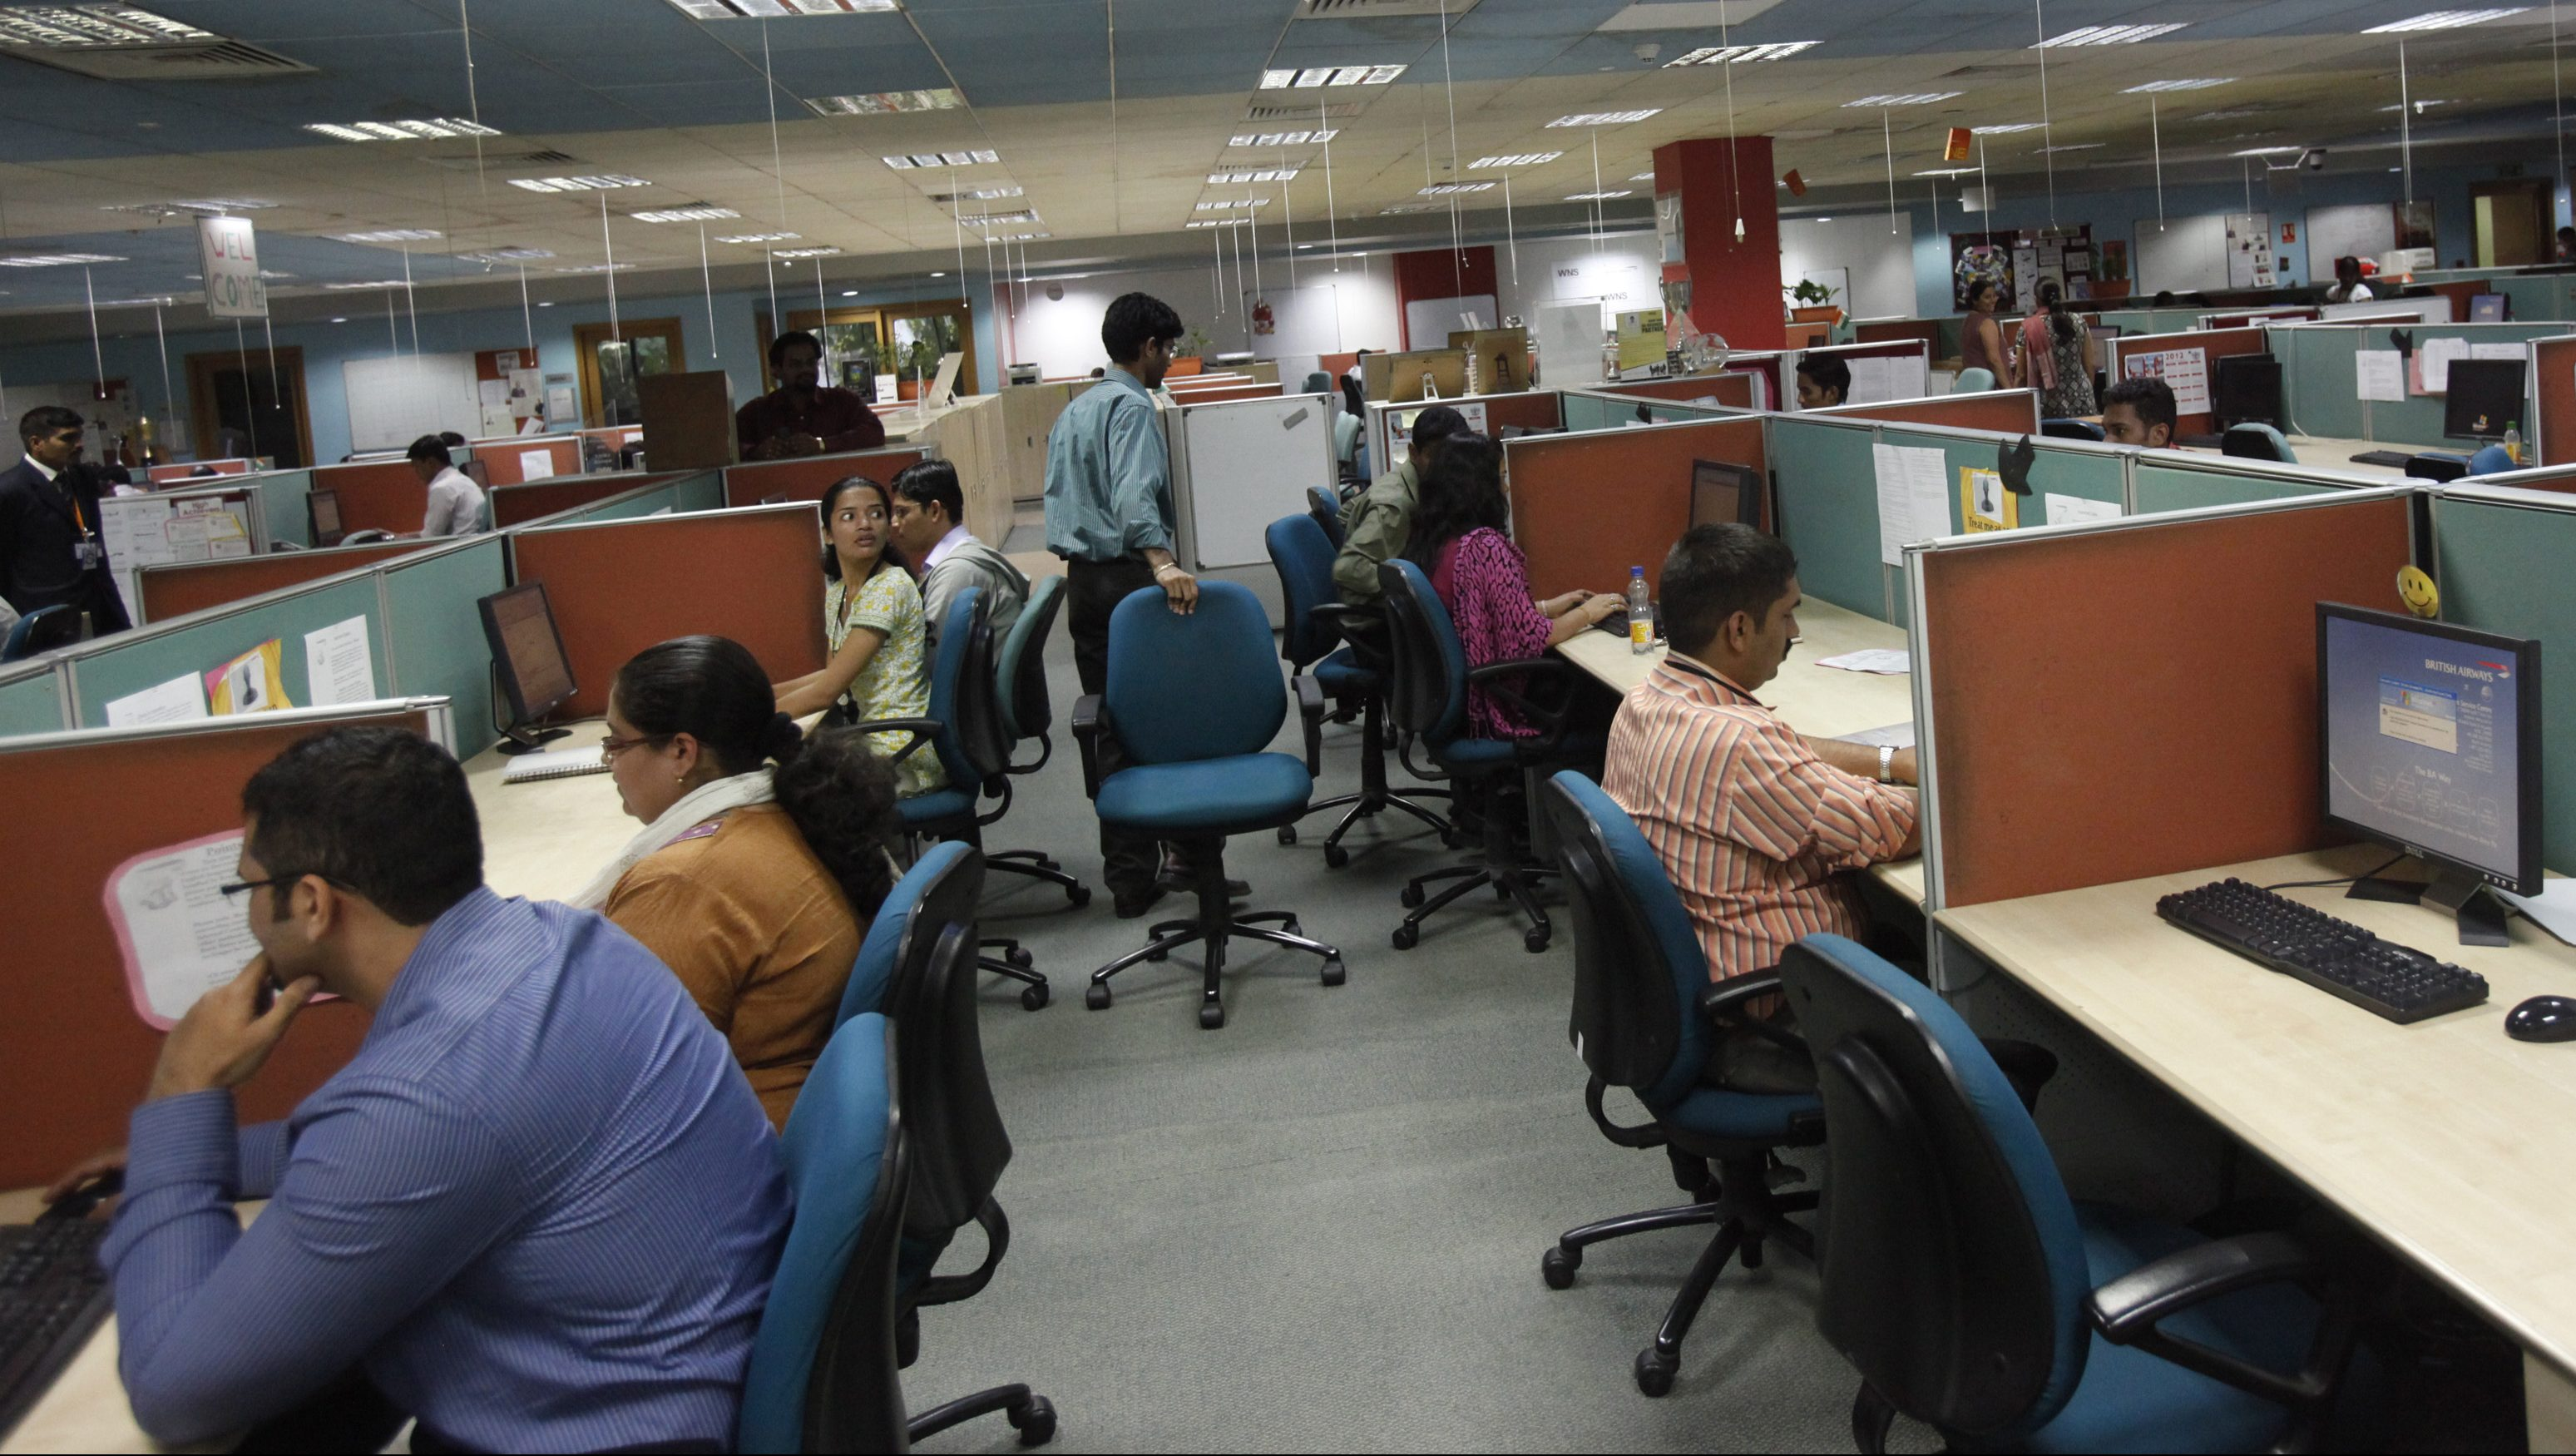 Employees work on the floor of the outsourcing company WNS in Mumbai March 19, 2012. Indian back-office company WNS Holdings Ltd may launch the first of three customer-service centres in the United States over the next quarter, its CEO Keshav Murugesh said, as it looks to boost revenues in its second largest market. REUTERS/Vivek Prakash (INDIA - Tags: BUSINESS EMPLOYMENT) - RTR2ZKU9